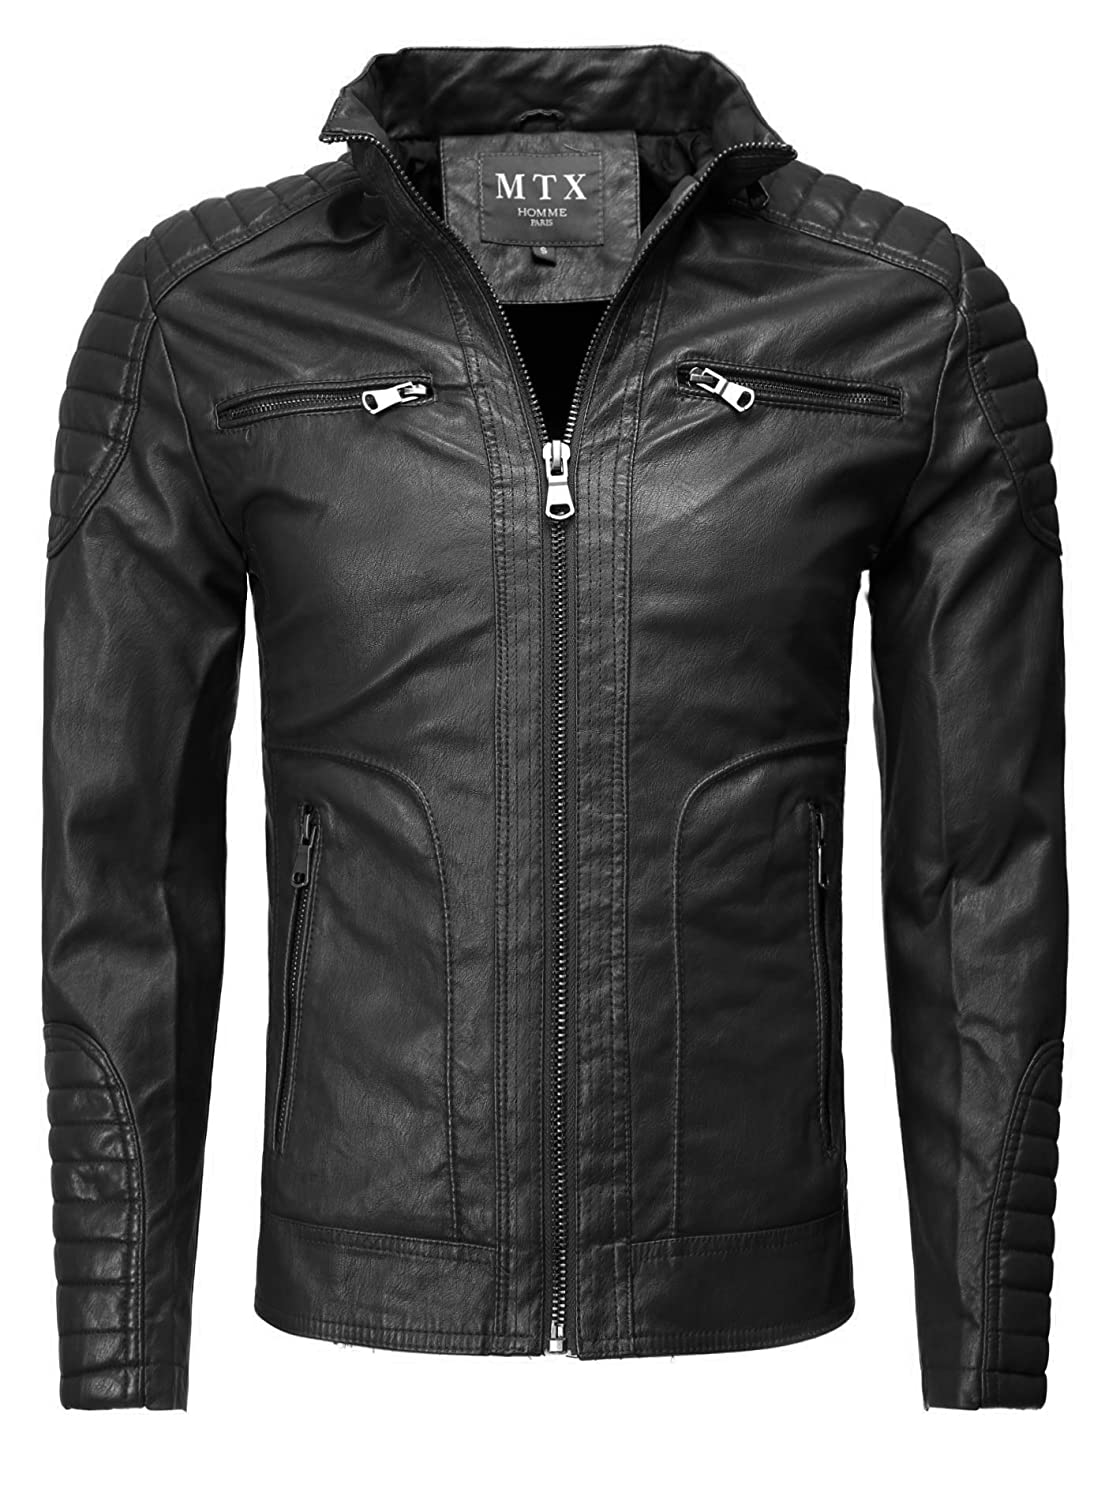 MTX Homme Men Faux Leather Jacket Schulterpolster Slim Fit Section Front Pocket with Zip seitliche Pockets monochrome Biker Look Light Stand-Up Collar